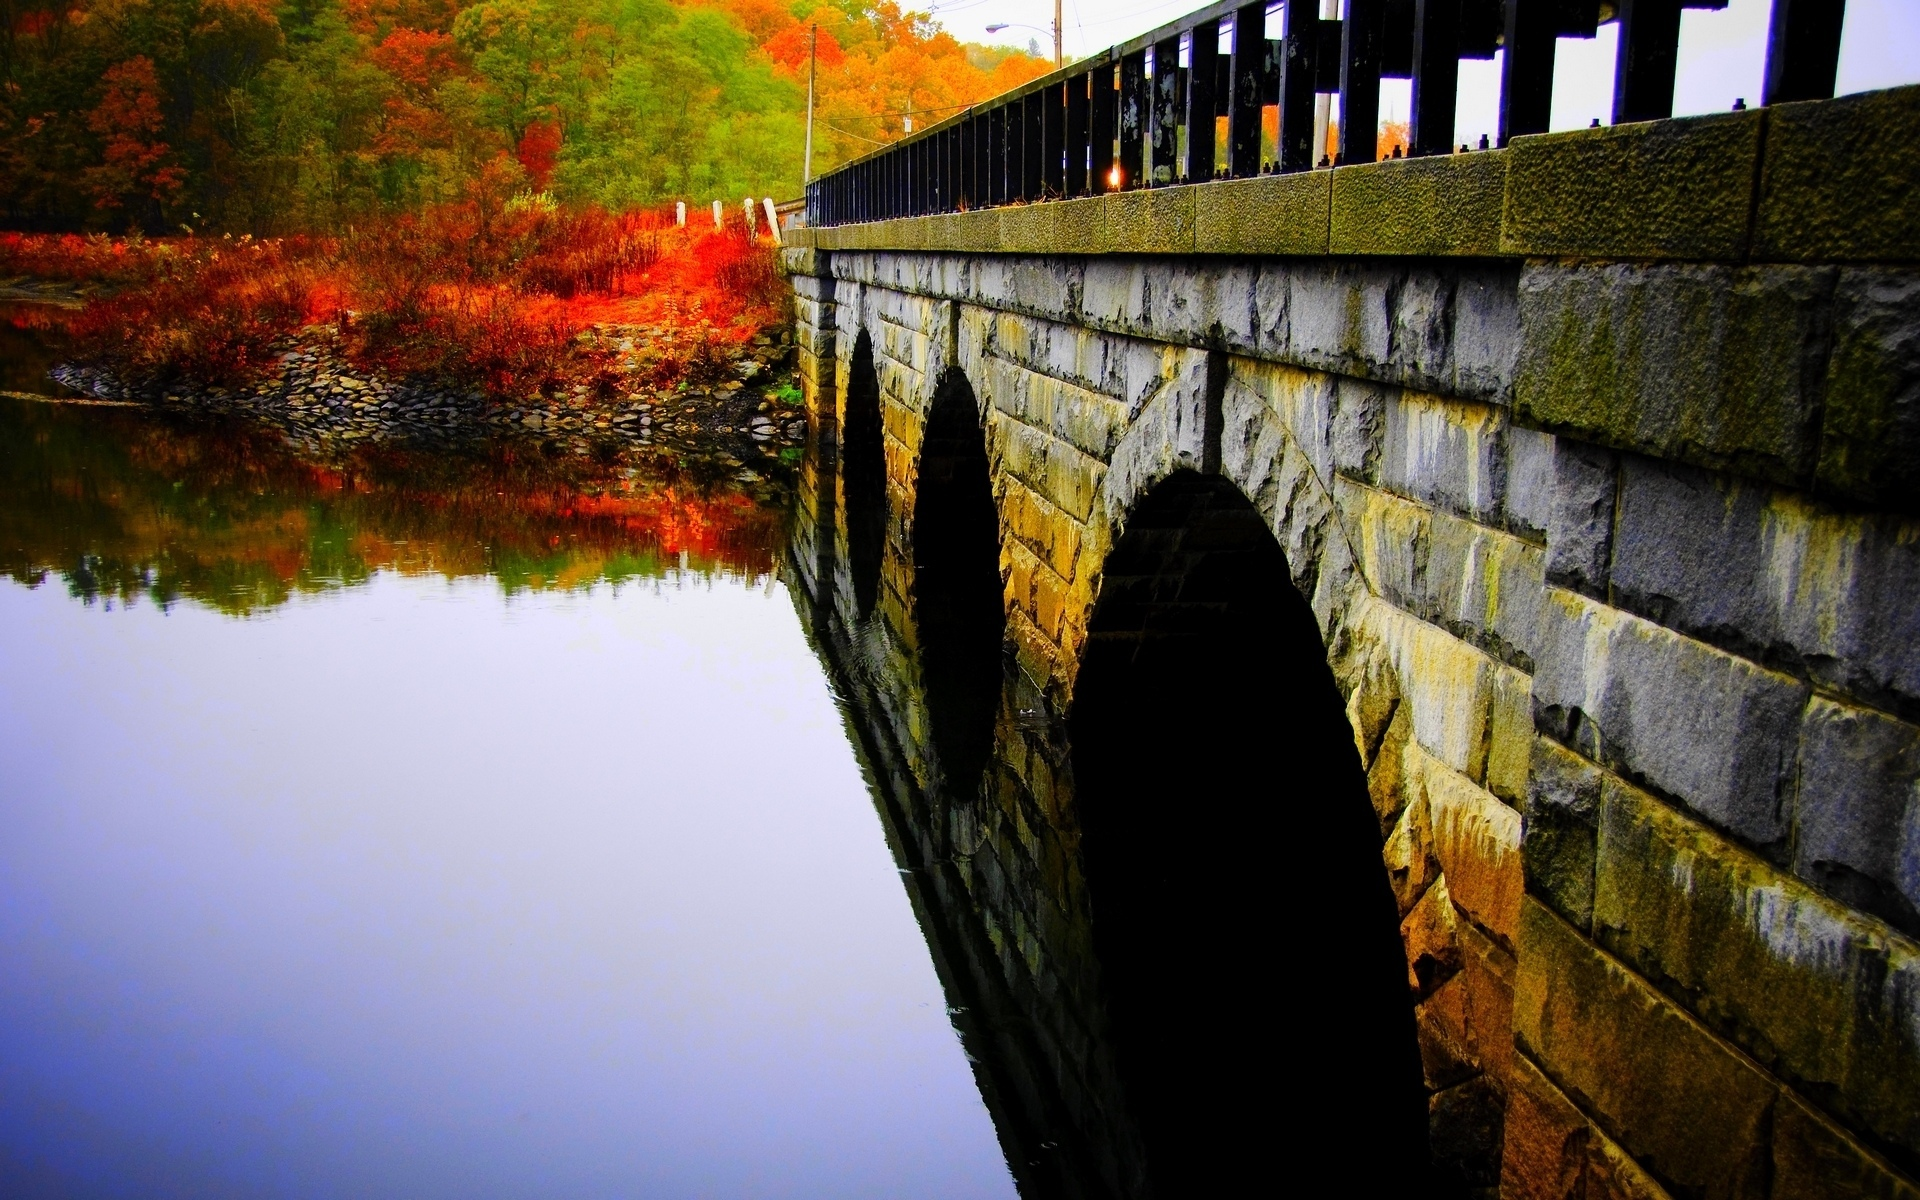 world architecture bridges stone masonry rivers stream water reflection bank shore plants trees autumn fall seasons color